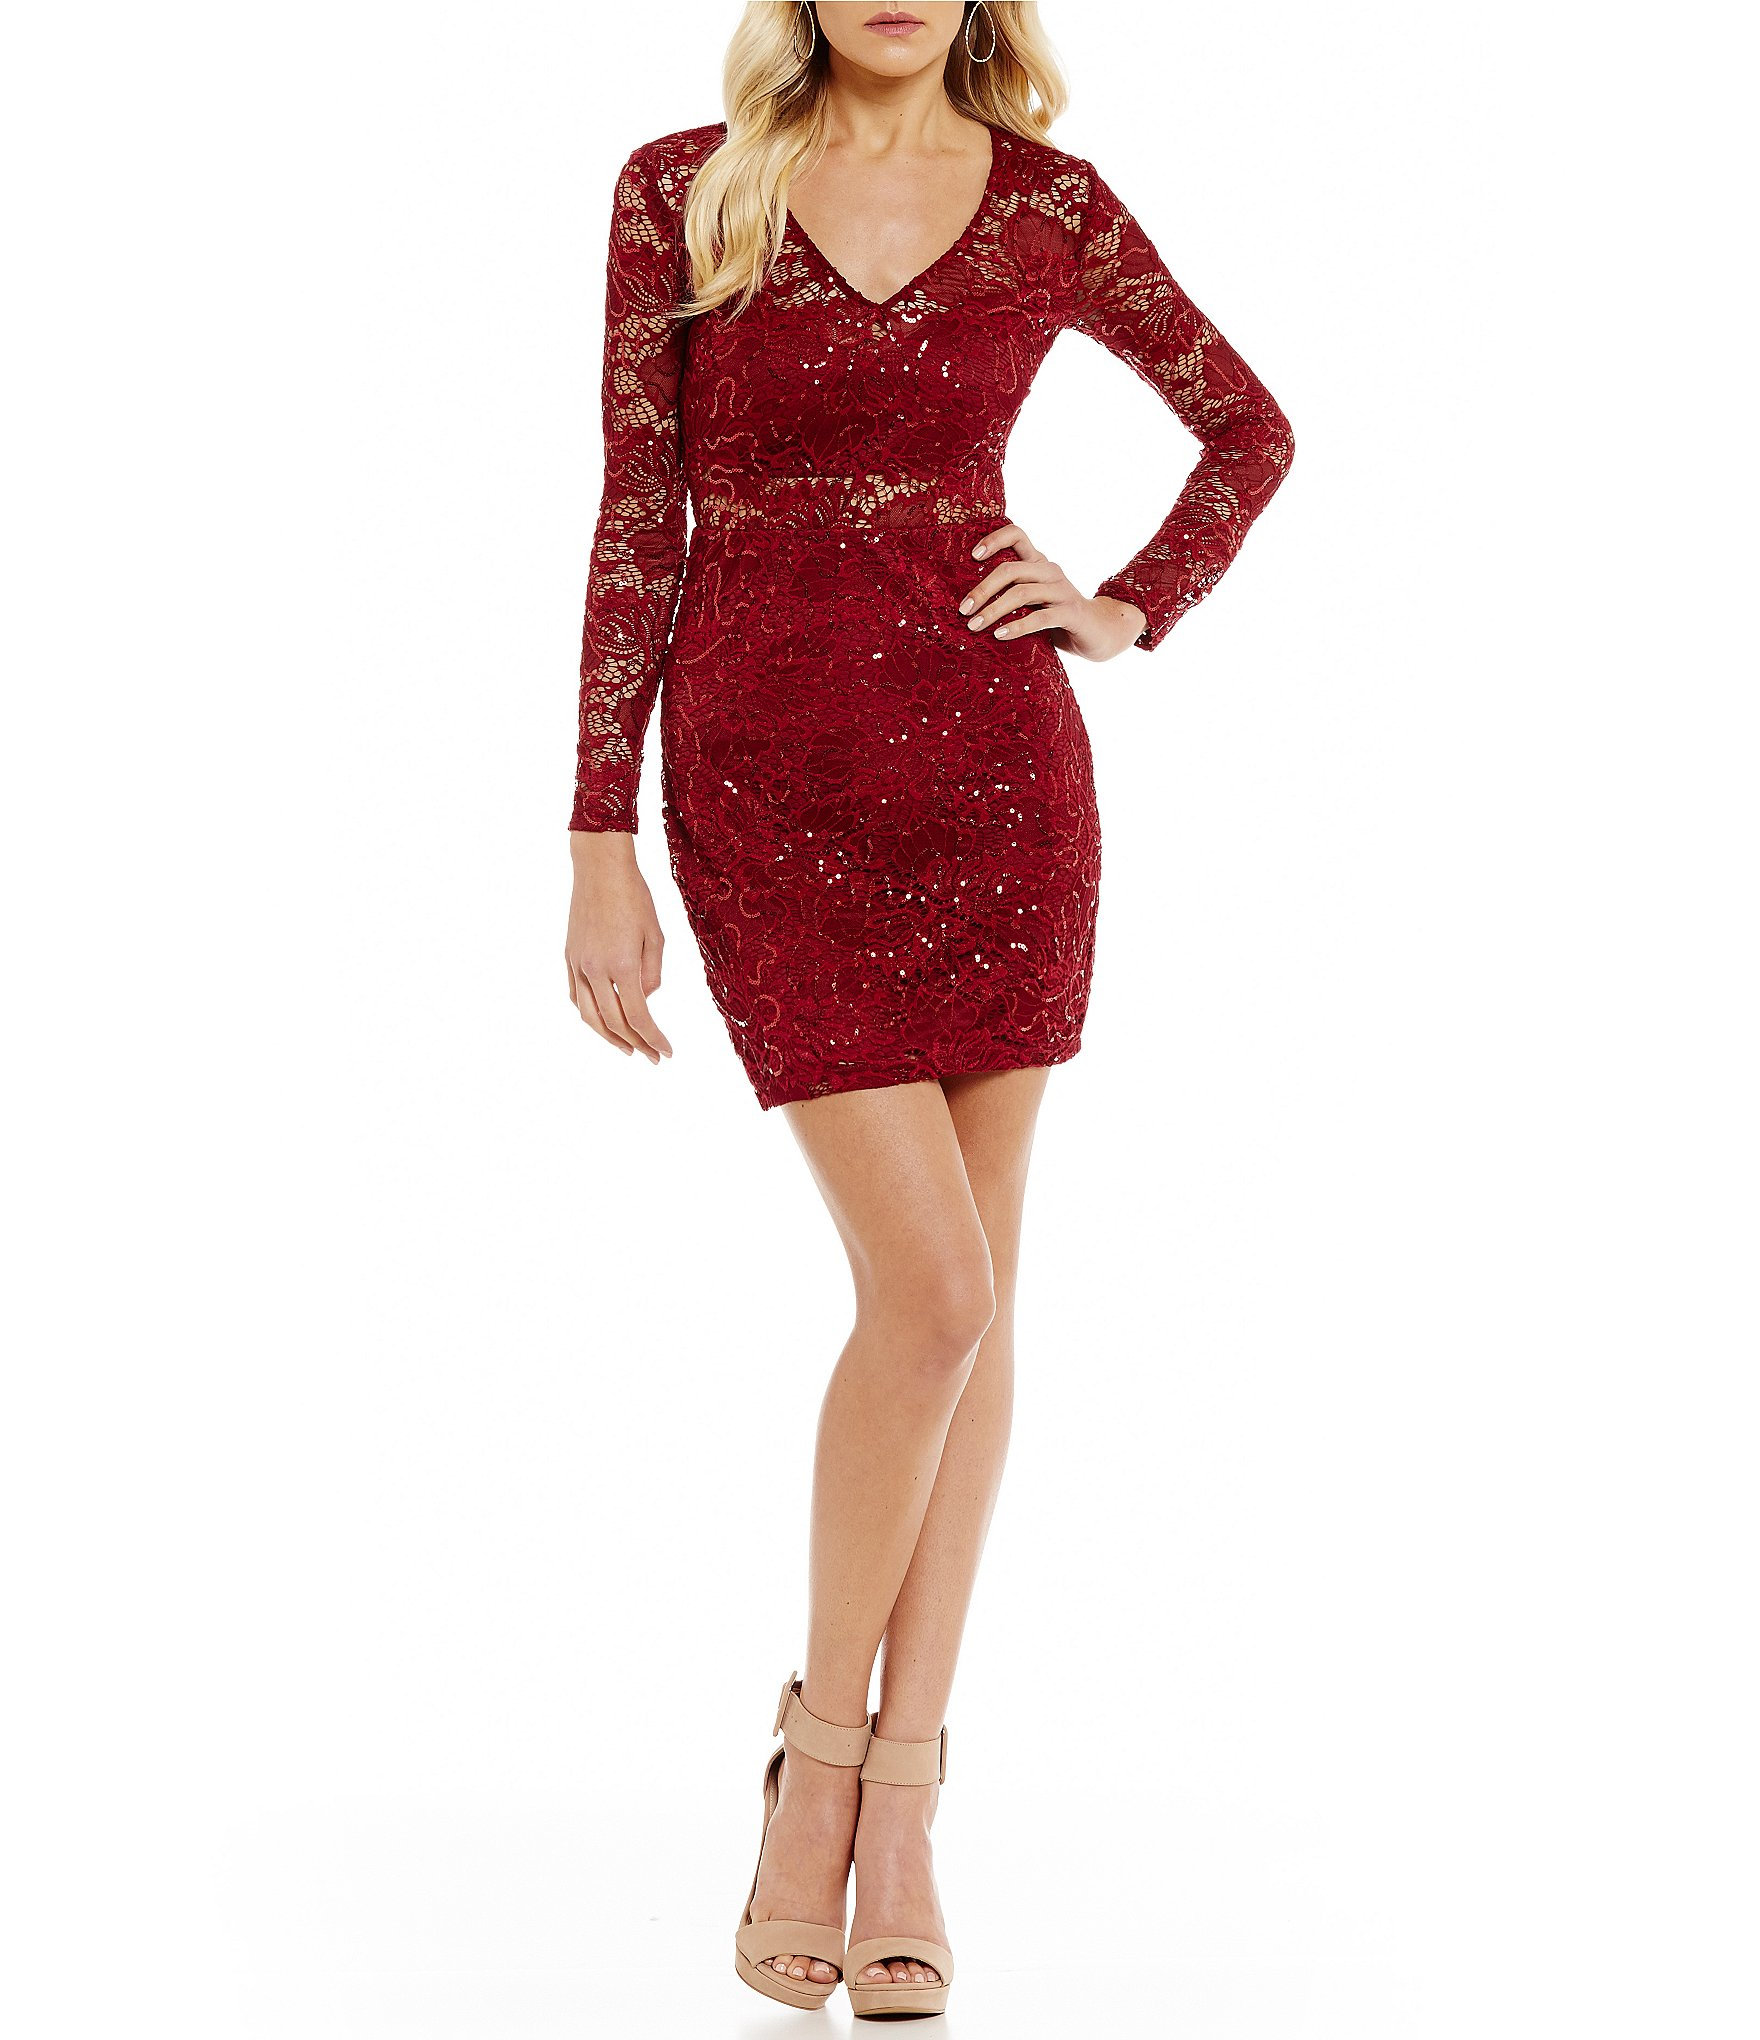 Jump dress long sleeve lace sequin mini red